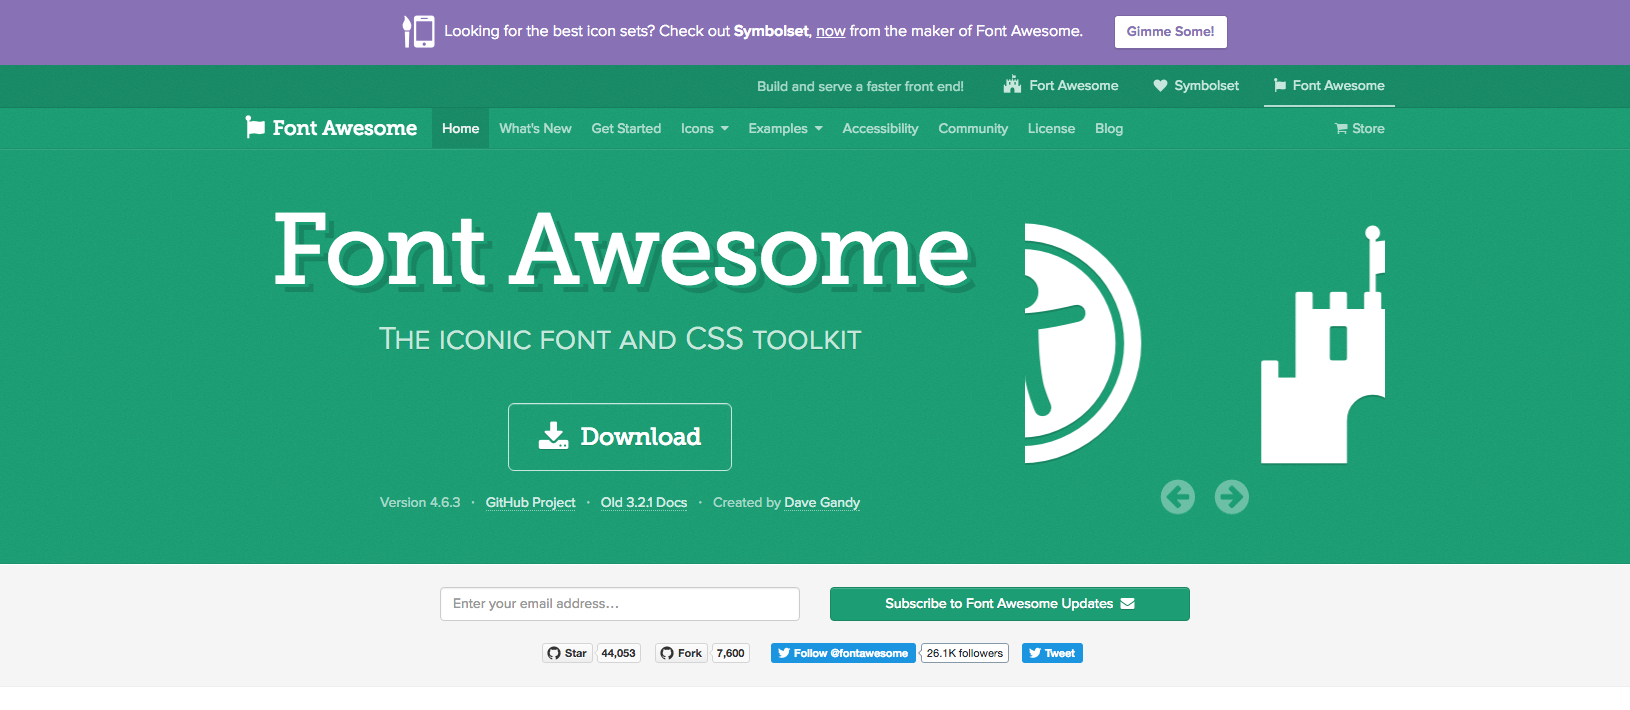 634 Icons For Adobe Muse Font Awesome Icon Set Web Design Ledger Web Design Adobe Muse Design